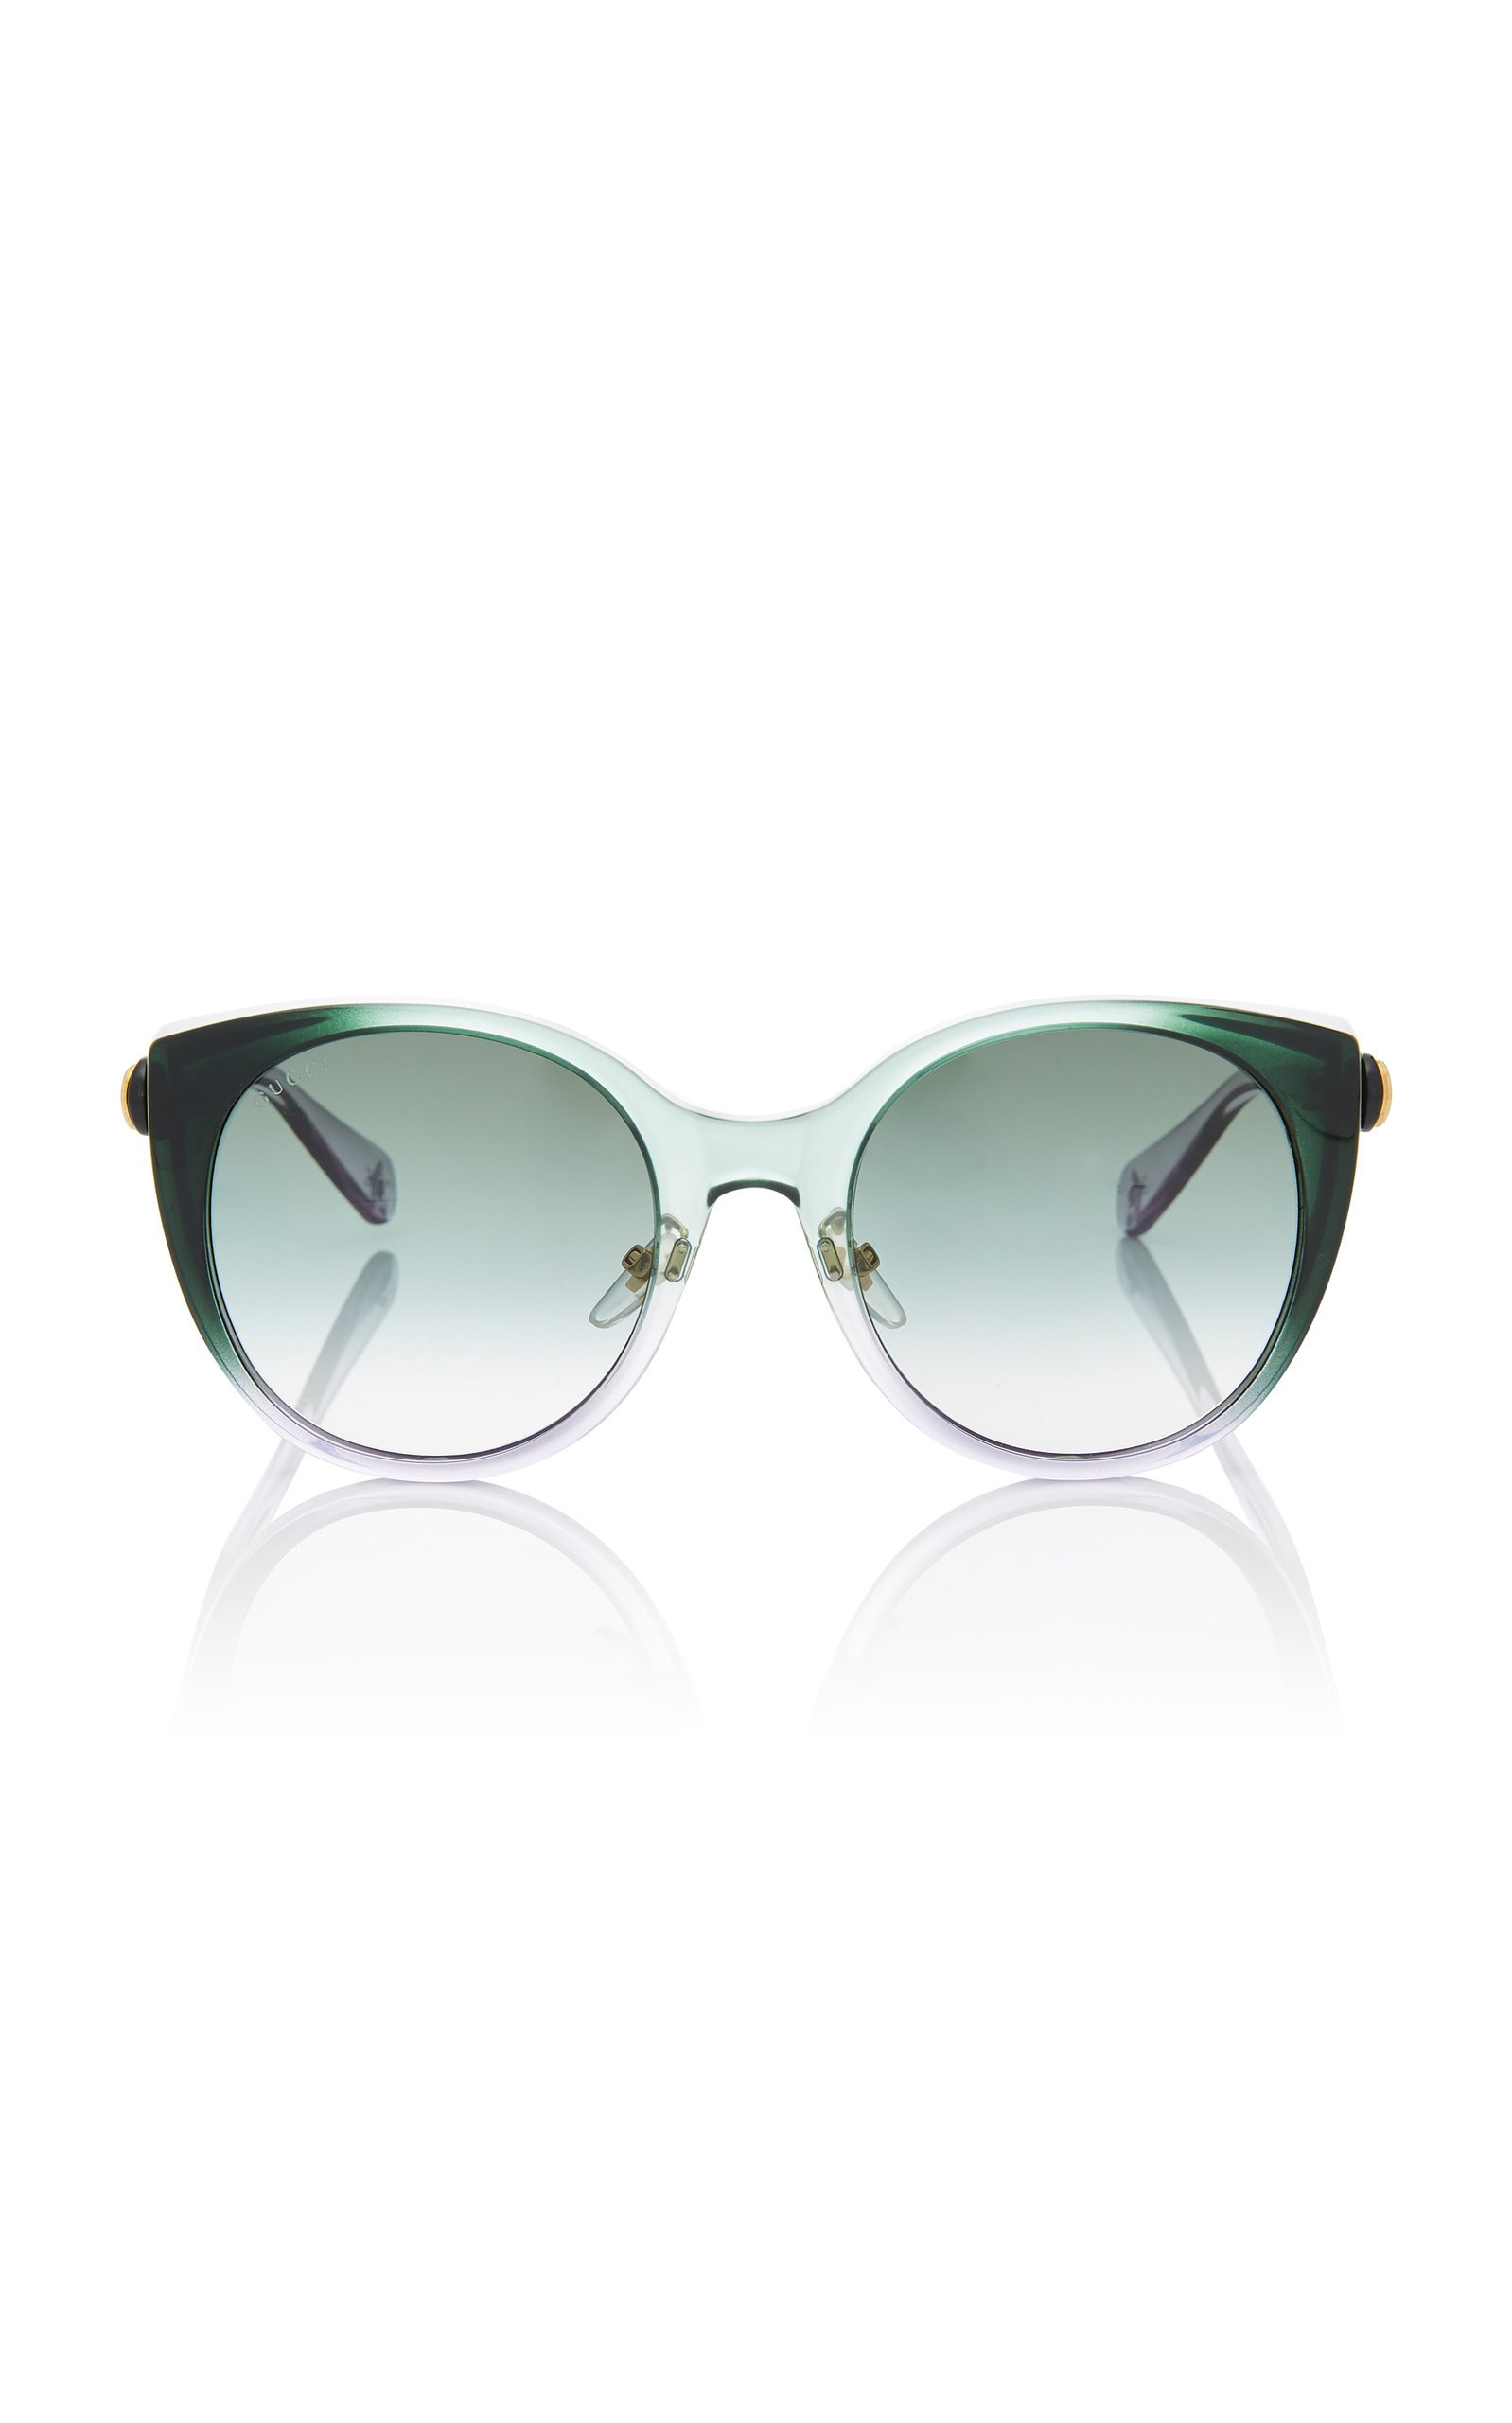 Gucci Sunglasses Round-Frame Sunglasses